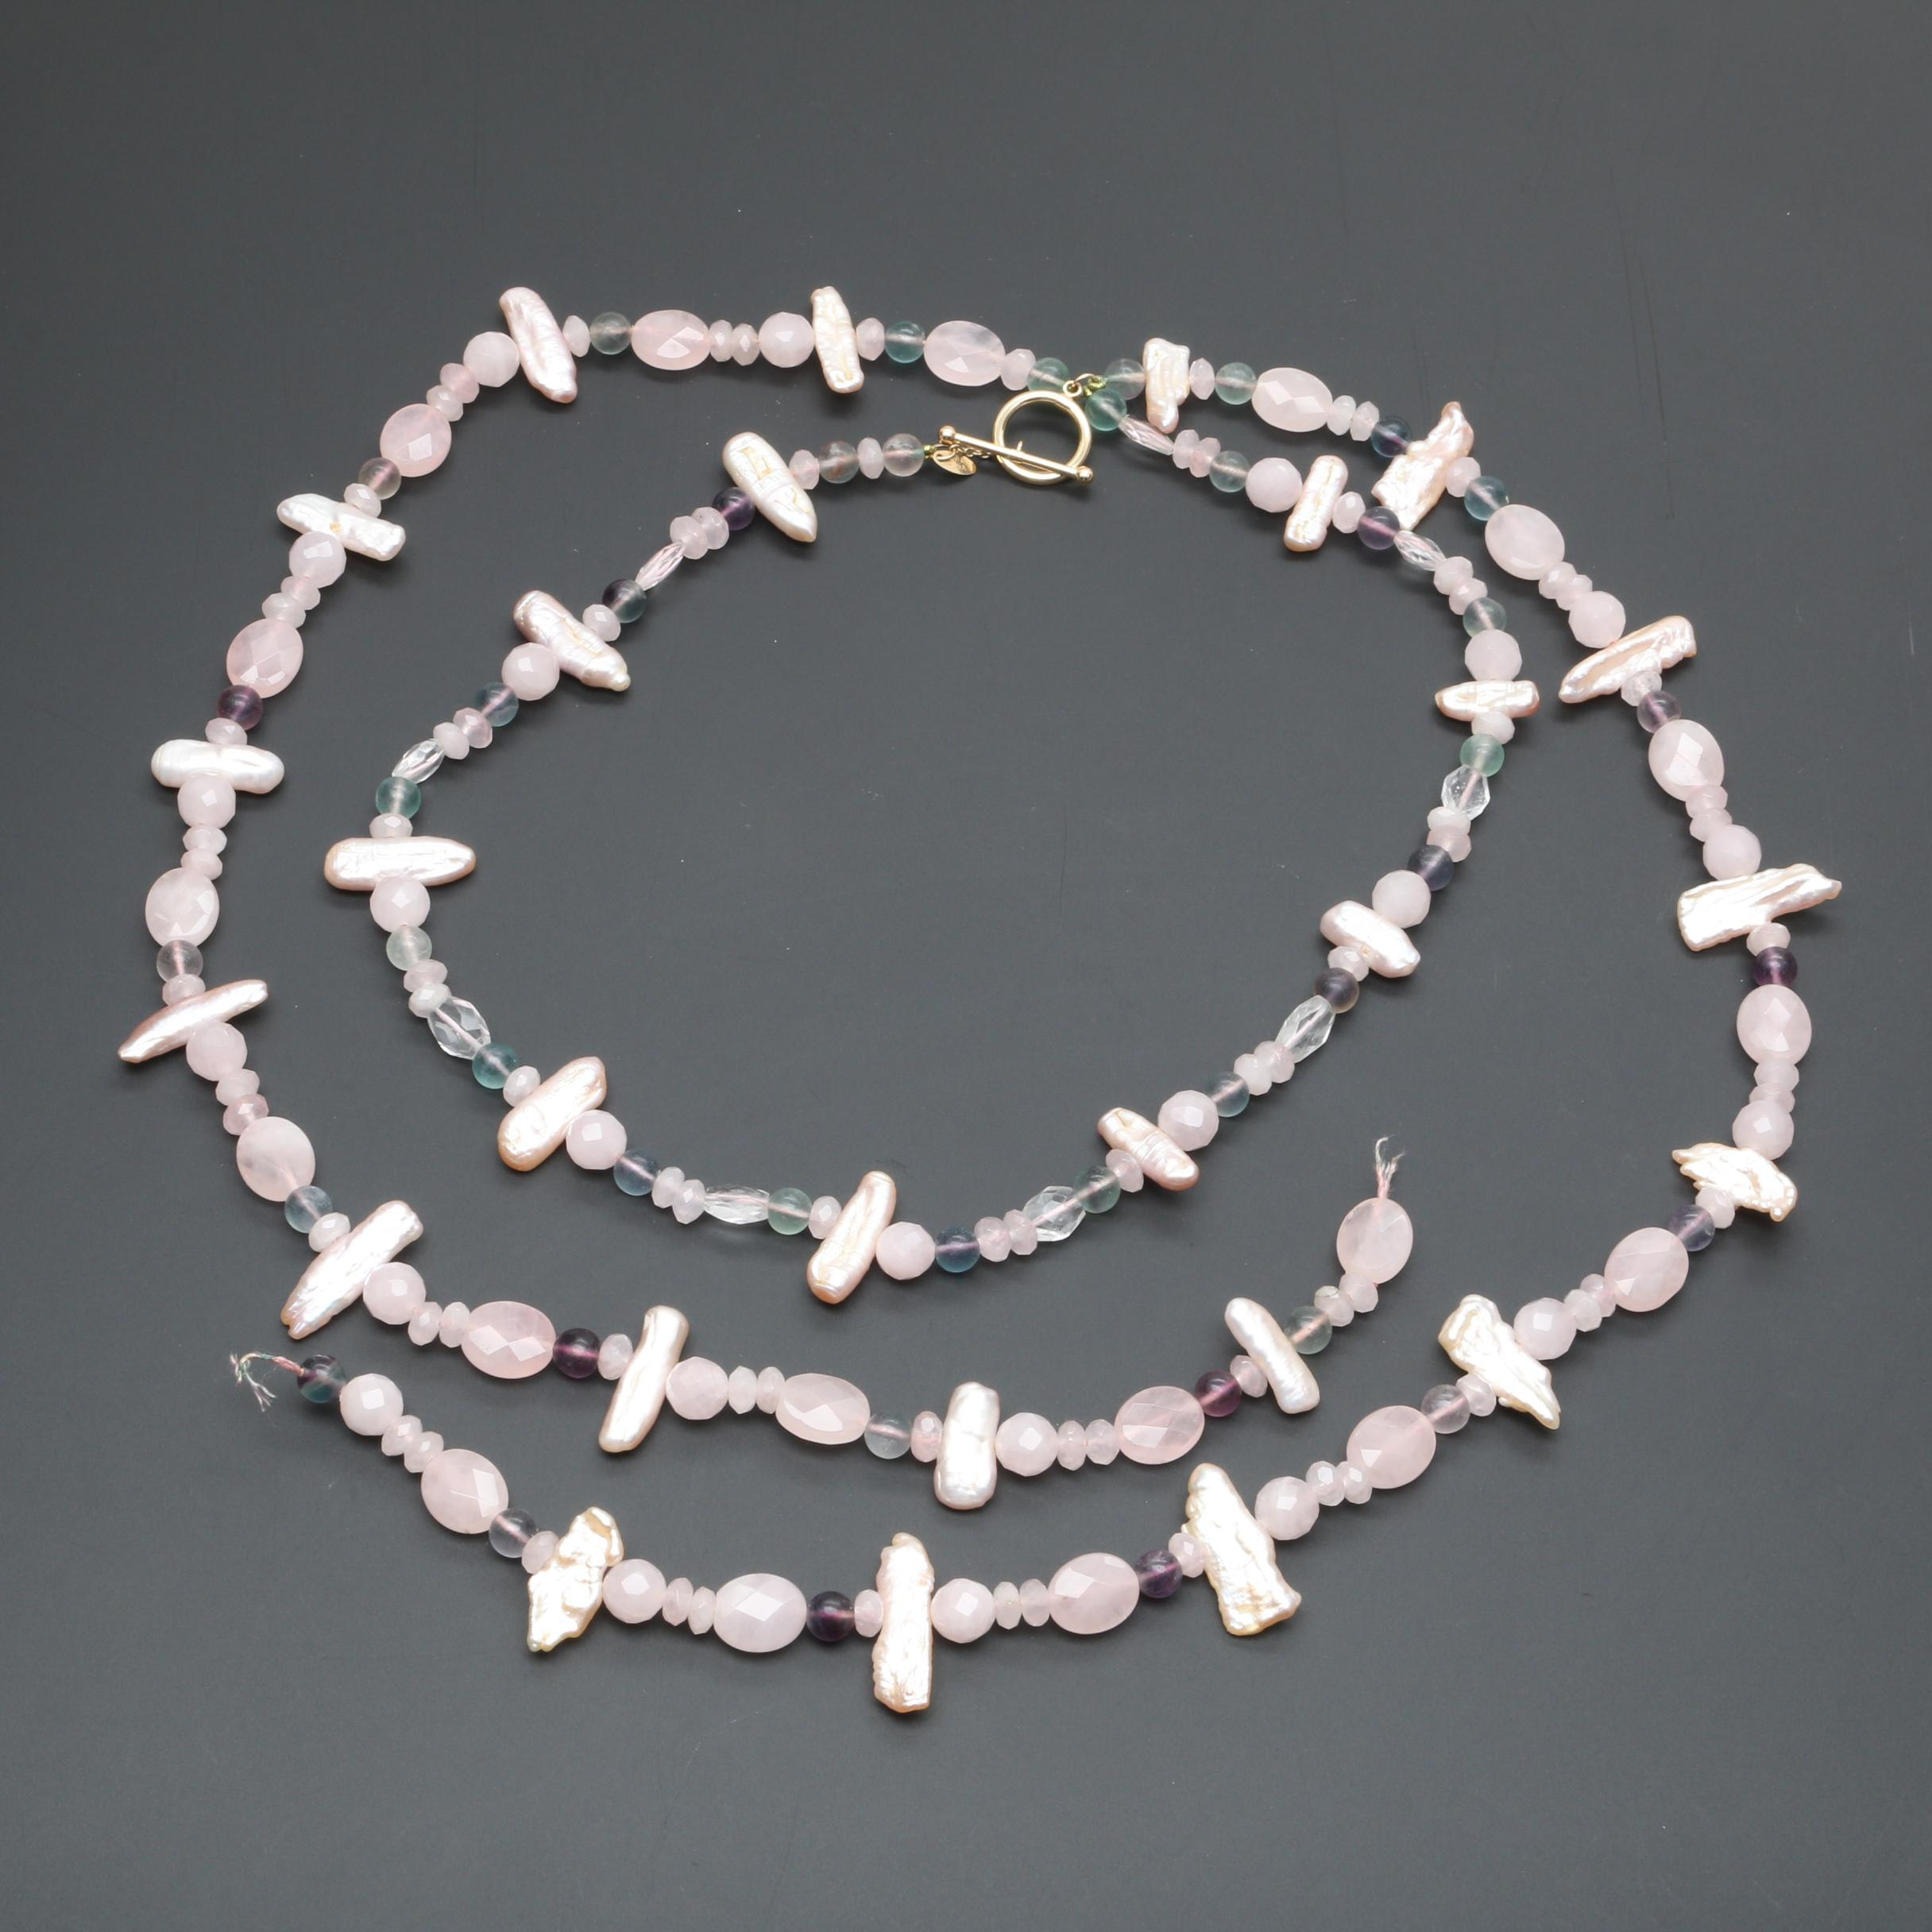 14K Yellow Gold Cultured Biwa Pearl, Rose Quartz and Fluorite Necklace